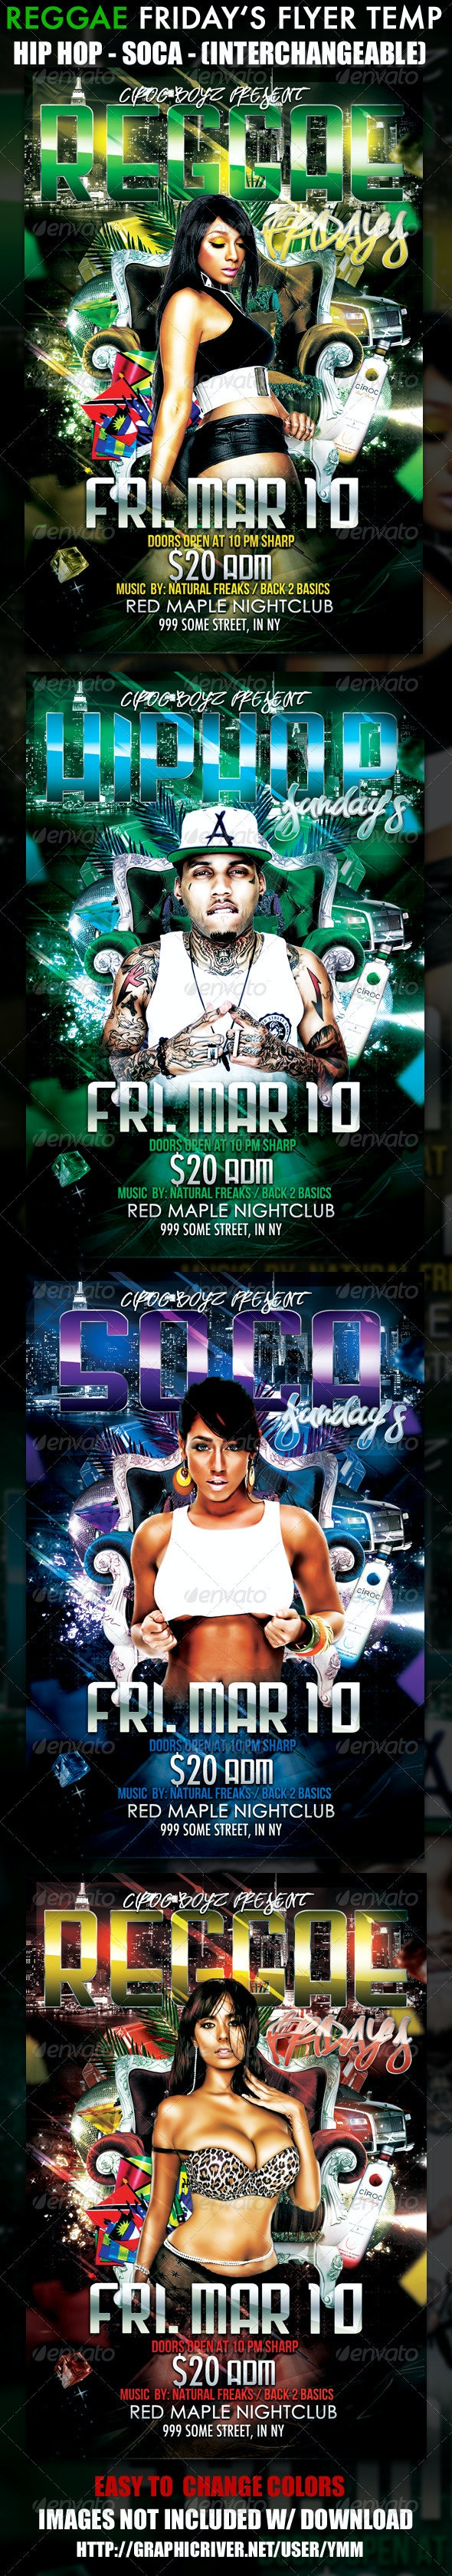 Reggae Friday's Flyer Template - Clubs & Parties Events